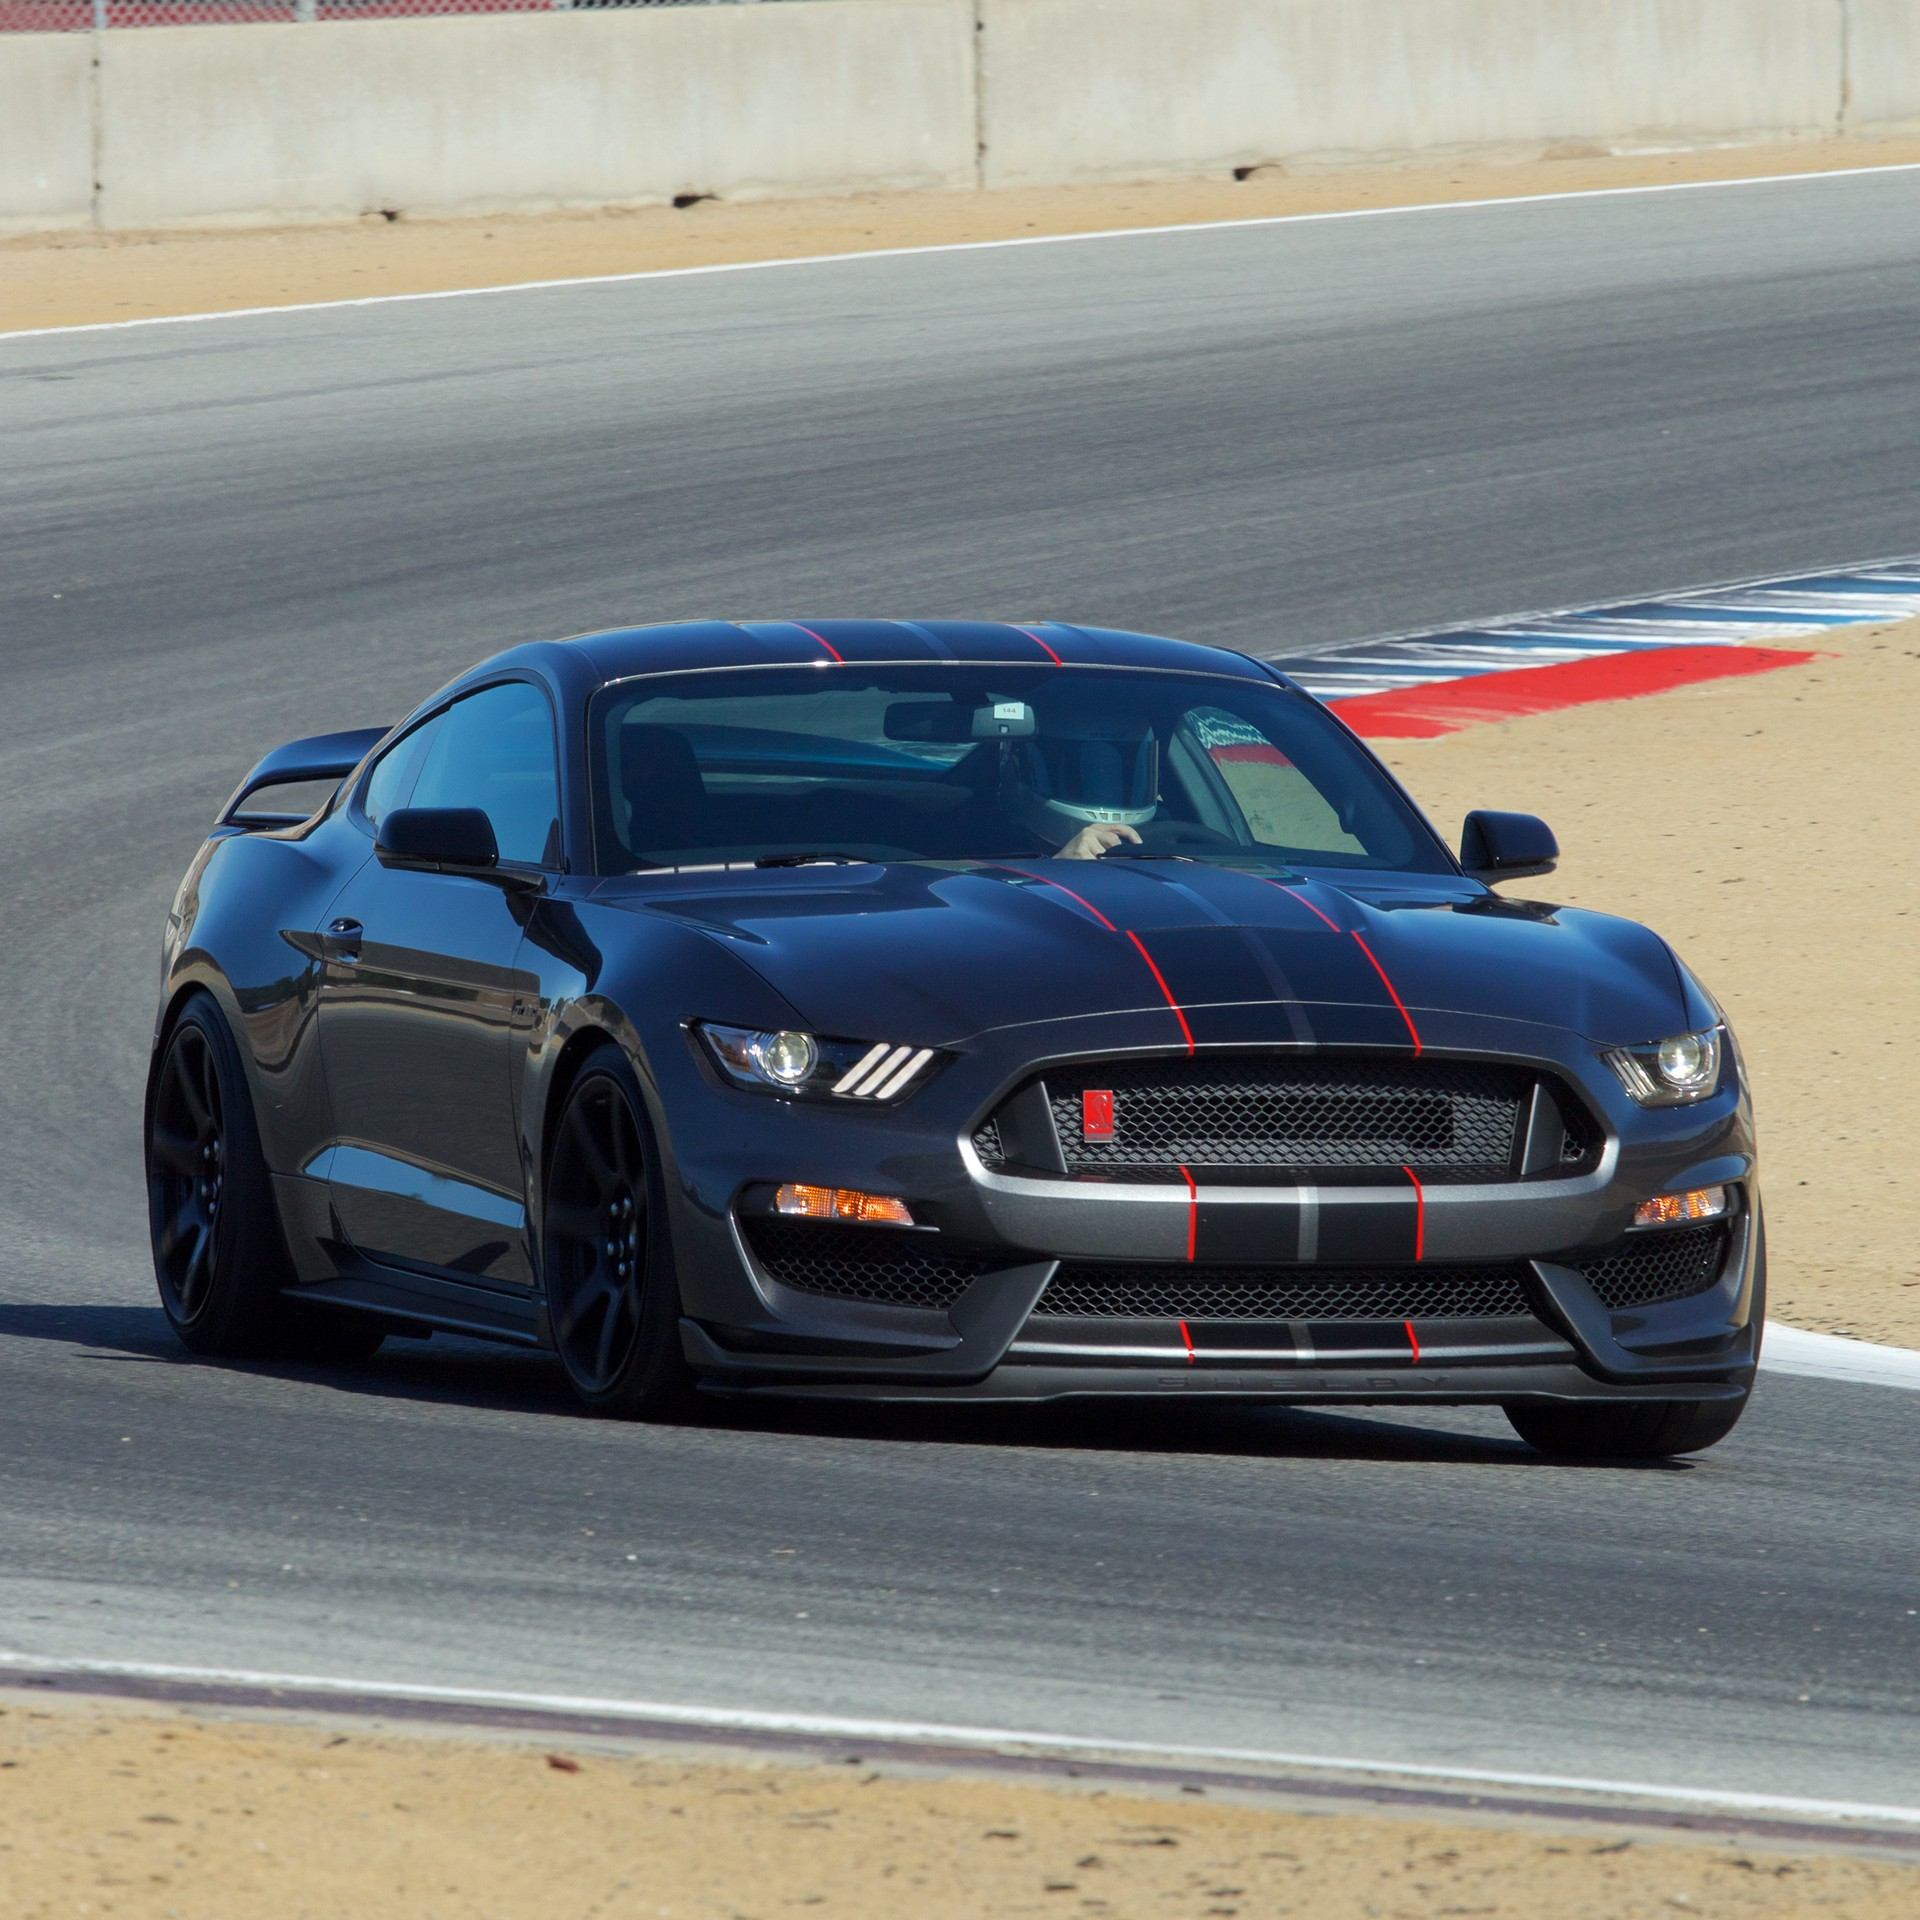 Ford Mustang Shelby Gt350r 2016 Ford Shelby Gt350 Mustang And 2016 Ford Shelby Gt350r